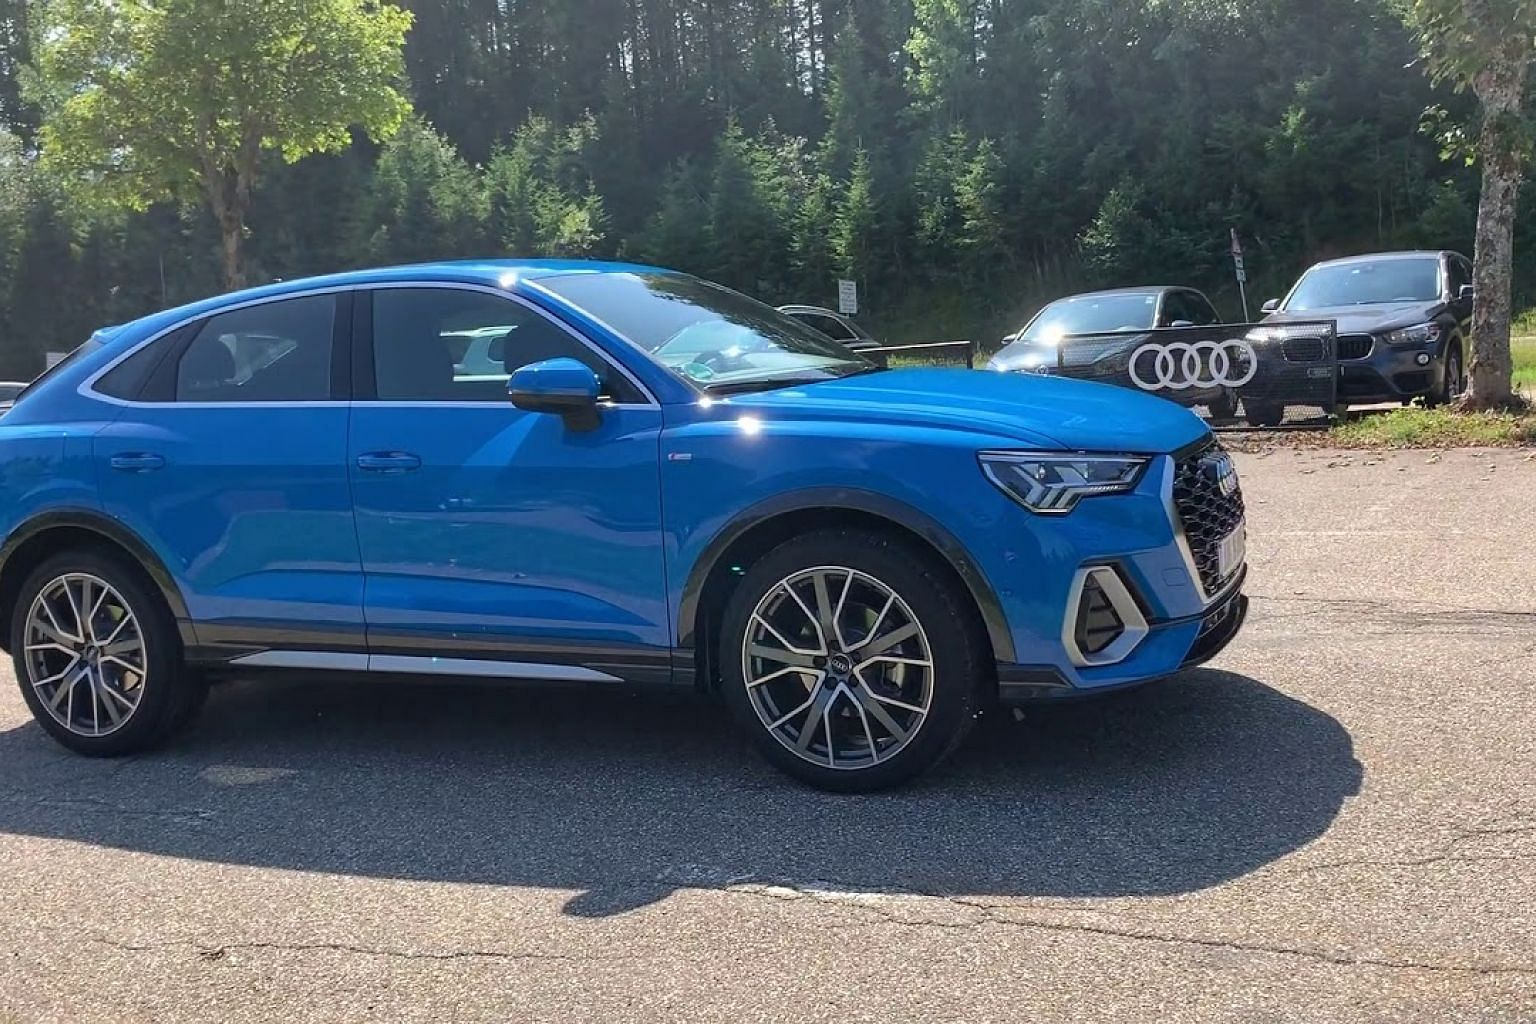 A 360 view of the Audi Q3 Sportback